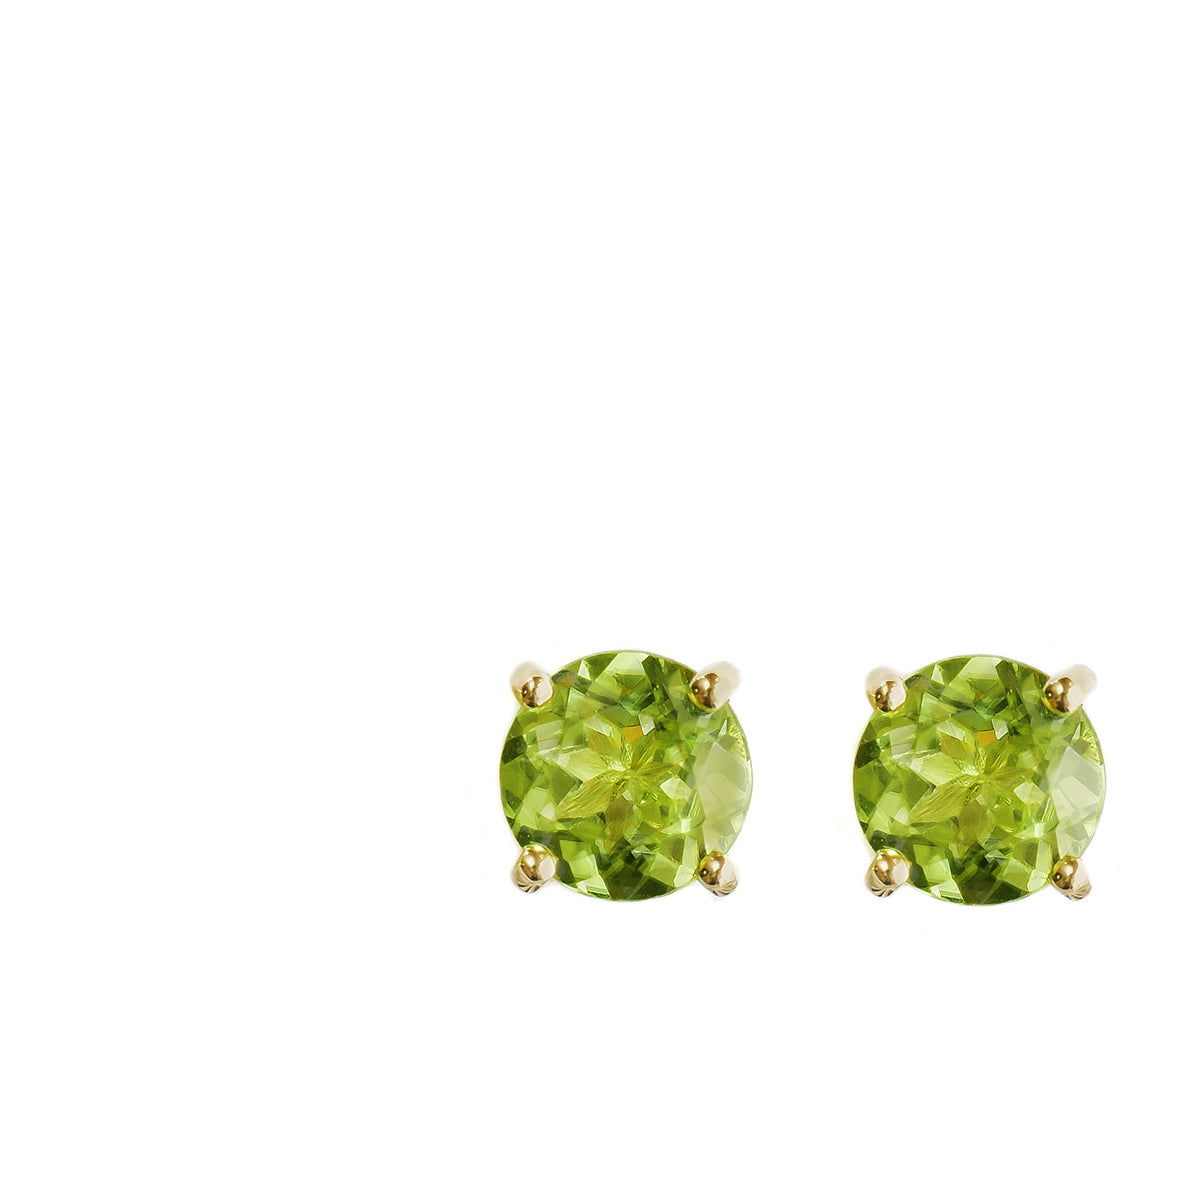 l yellow peridot room solid earrings property gold stud